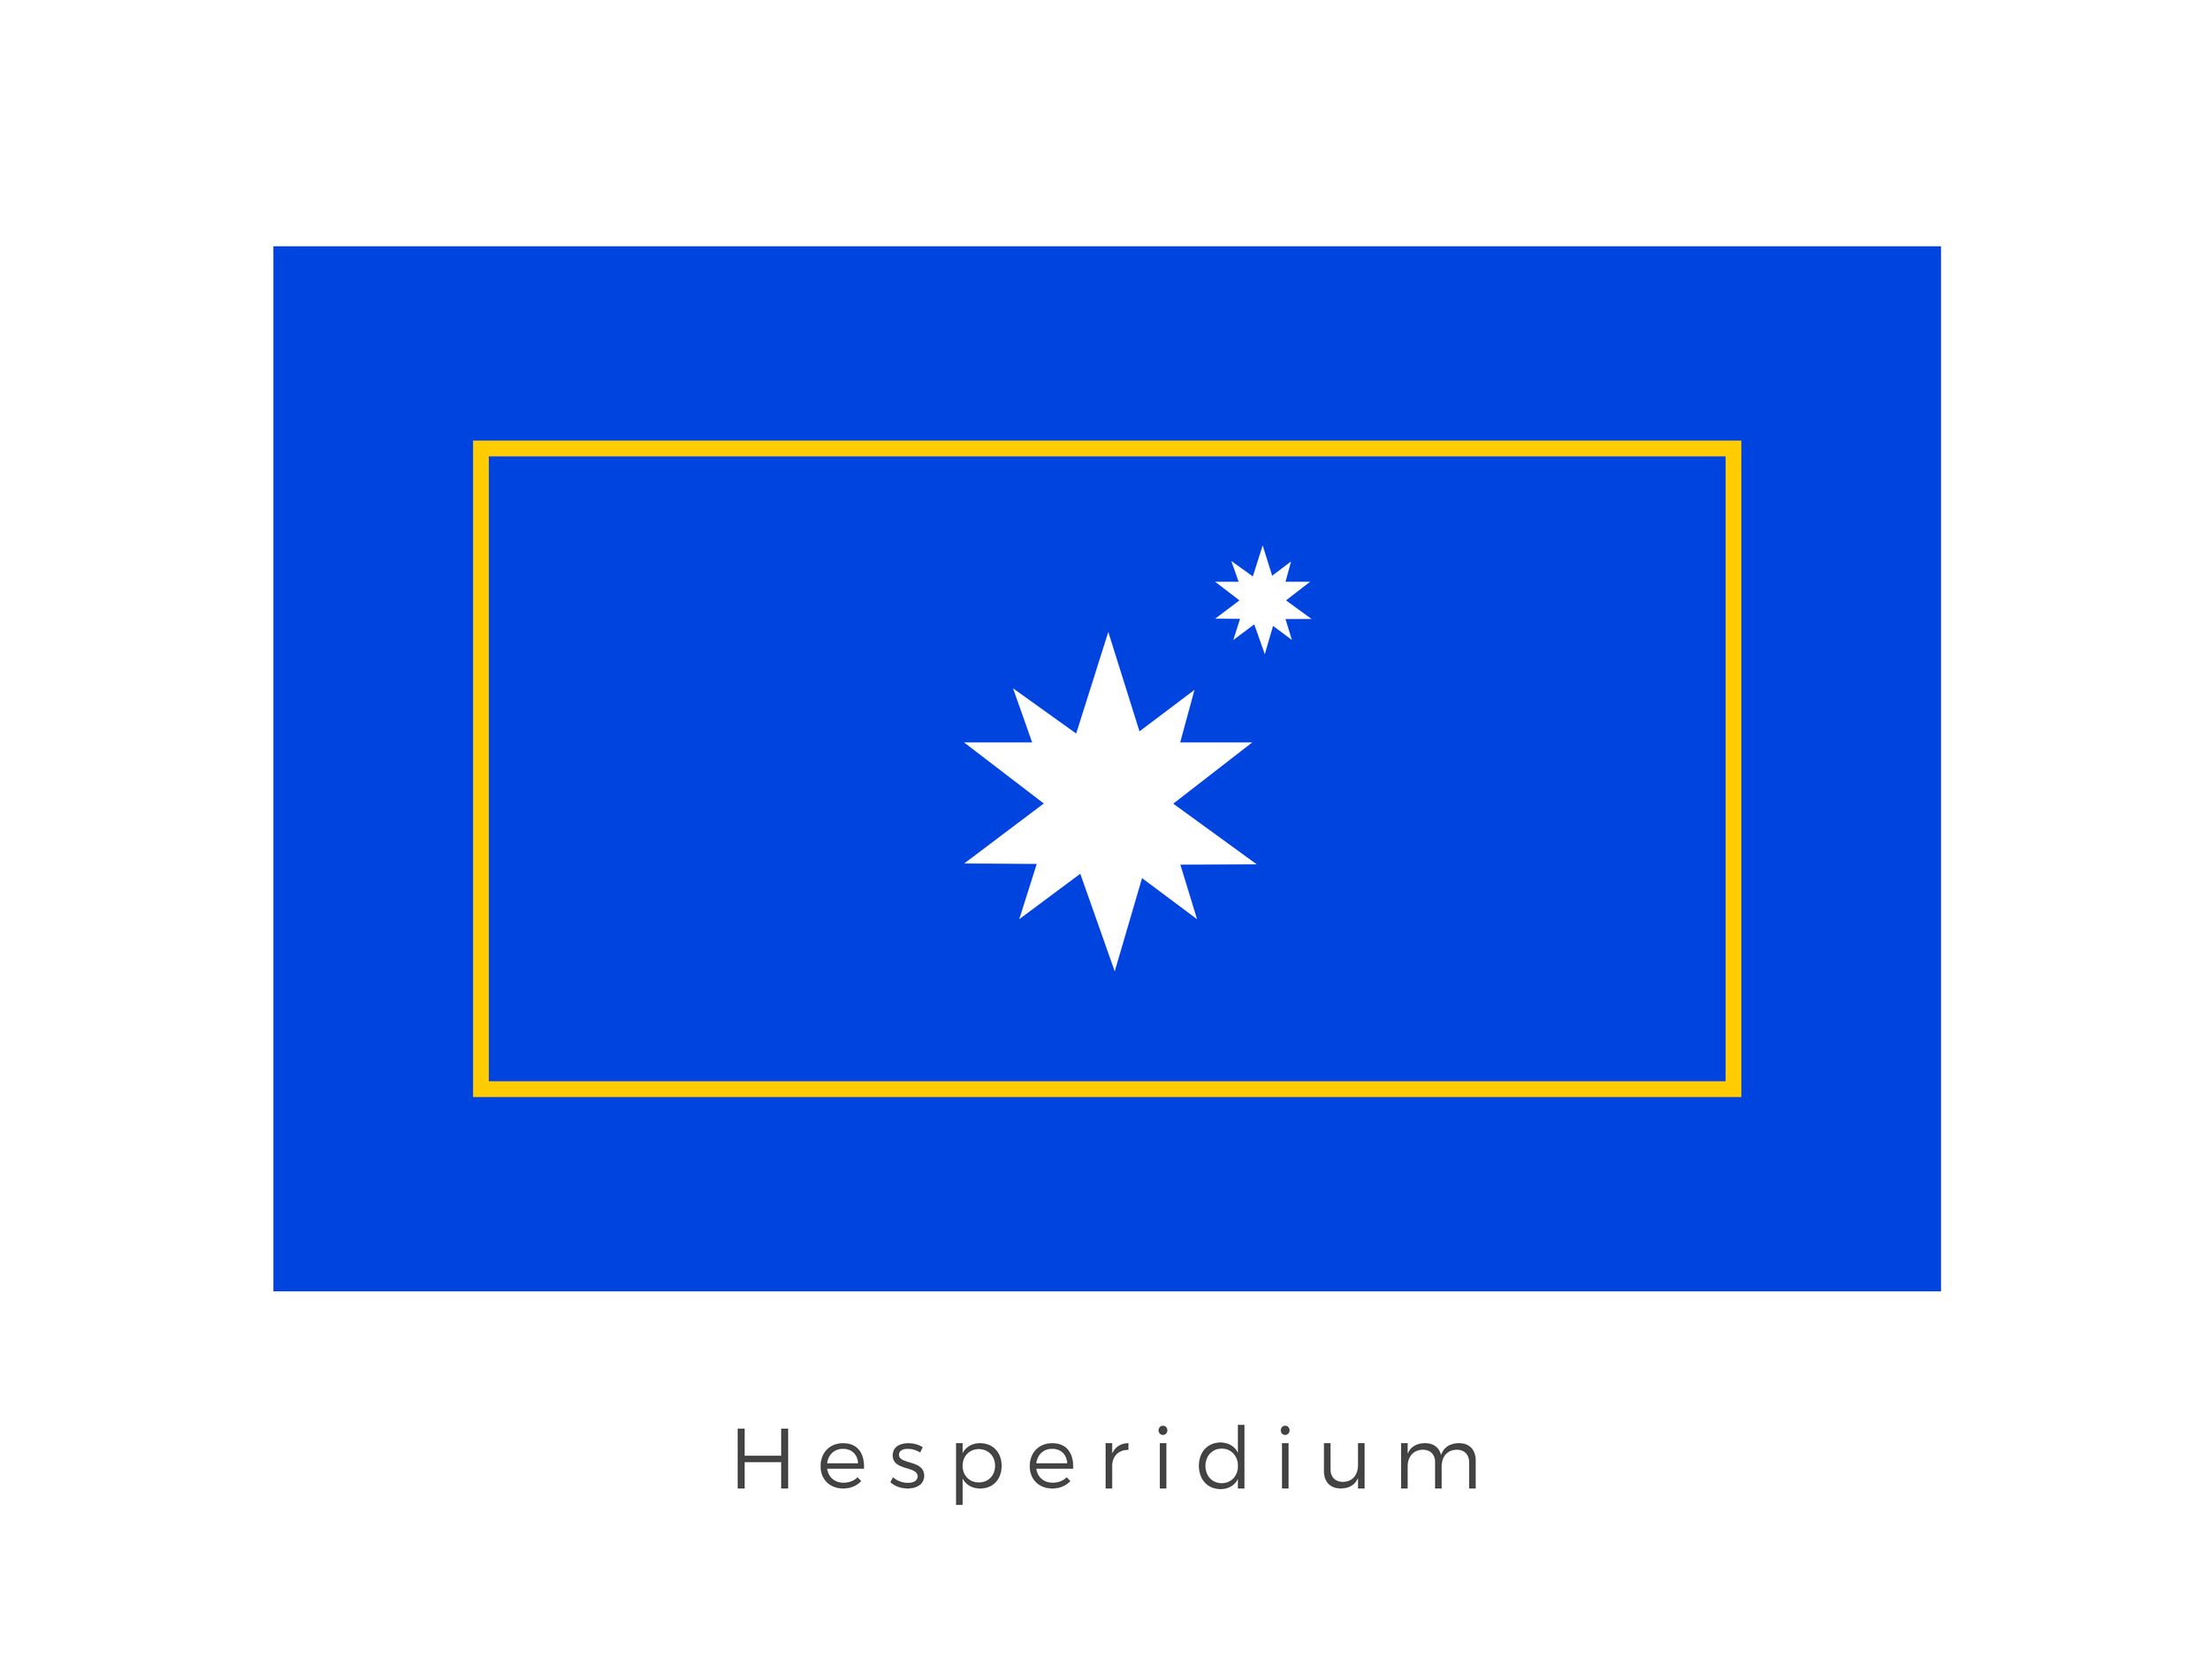 Hesperidium  was a luxurious resort moon that orbited Coruscant. It took its design form from Coruscant, with the star orbiting star graphic representing Hesperidium's relationship with Coruscant. The blue base colour as well as the gold band, signify the fact that Hesperidium comes under the economic and political domain of Coruscant.